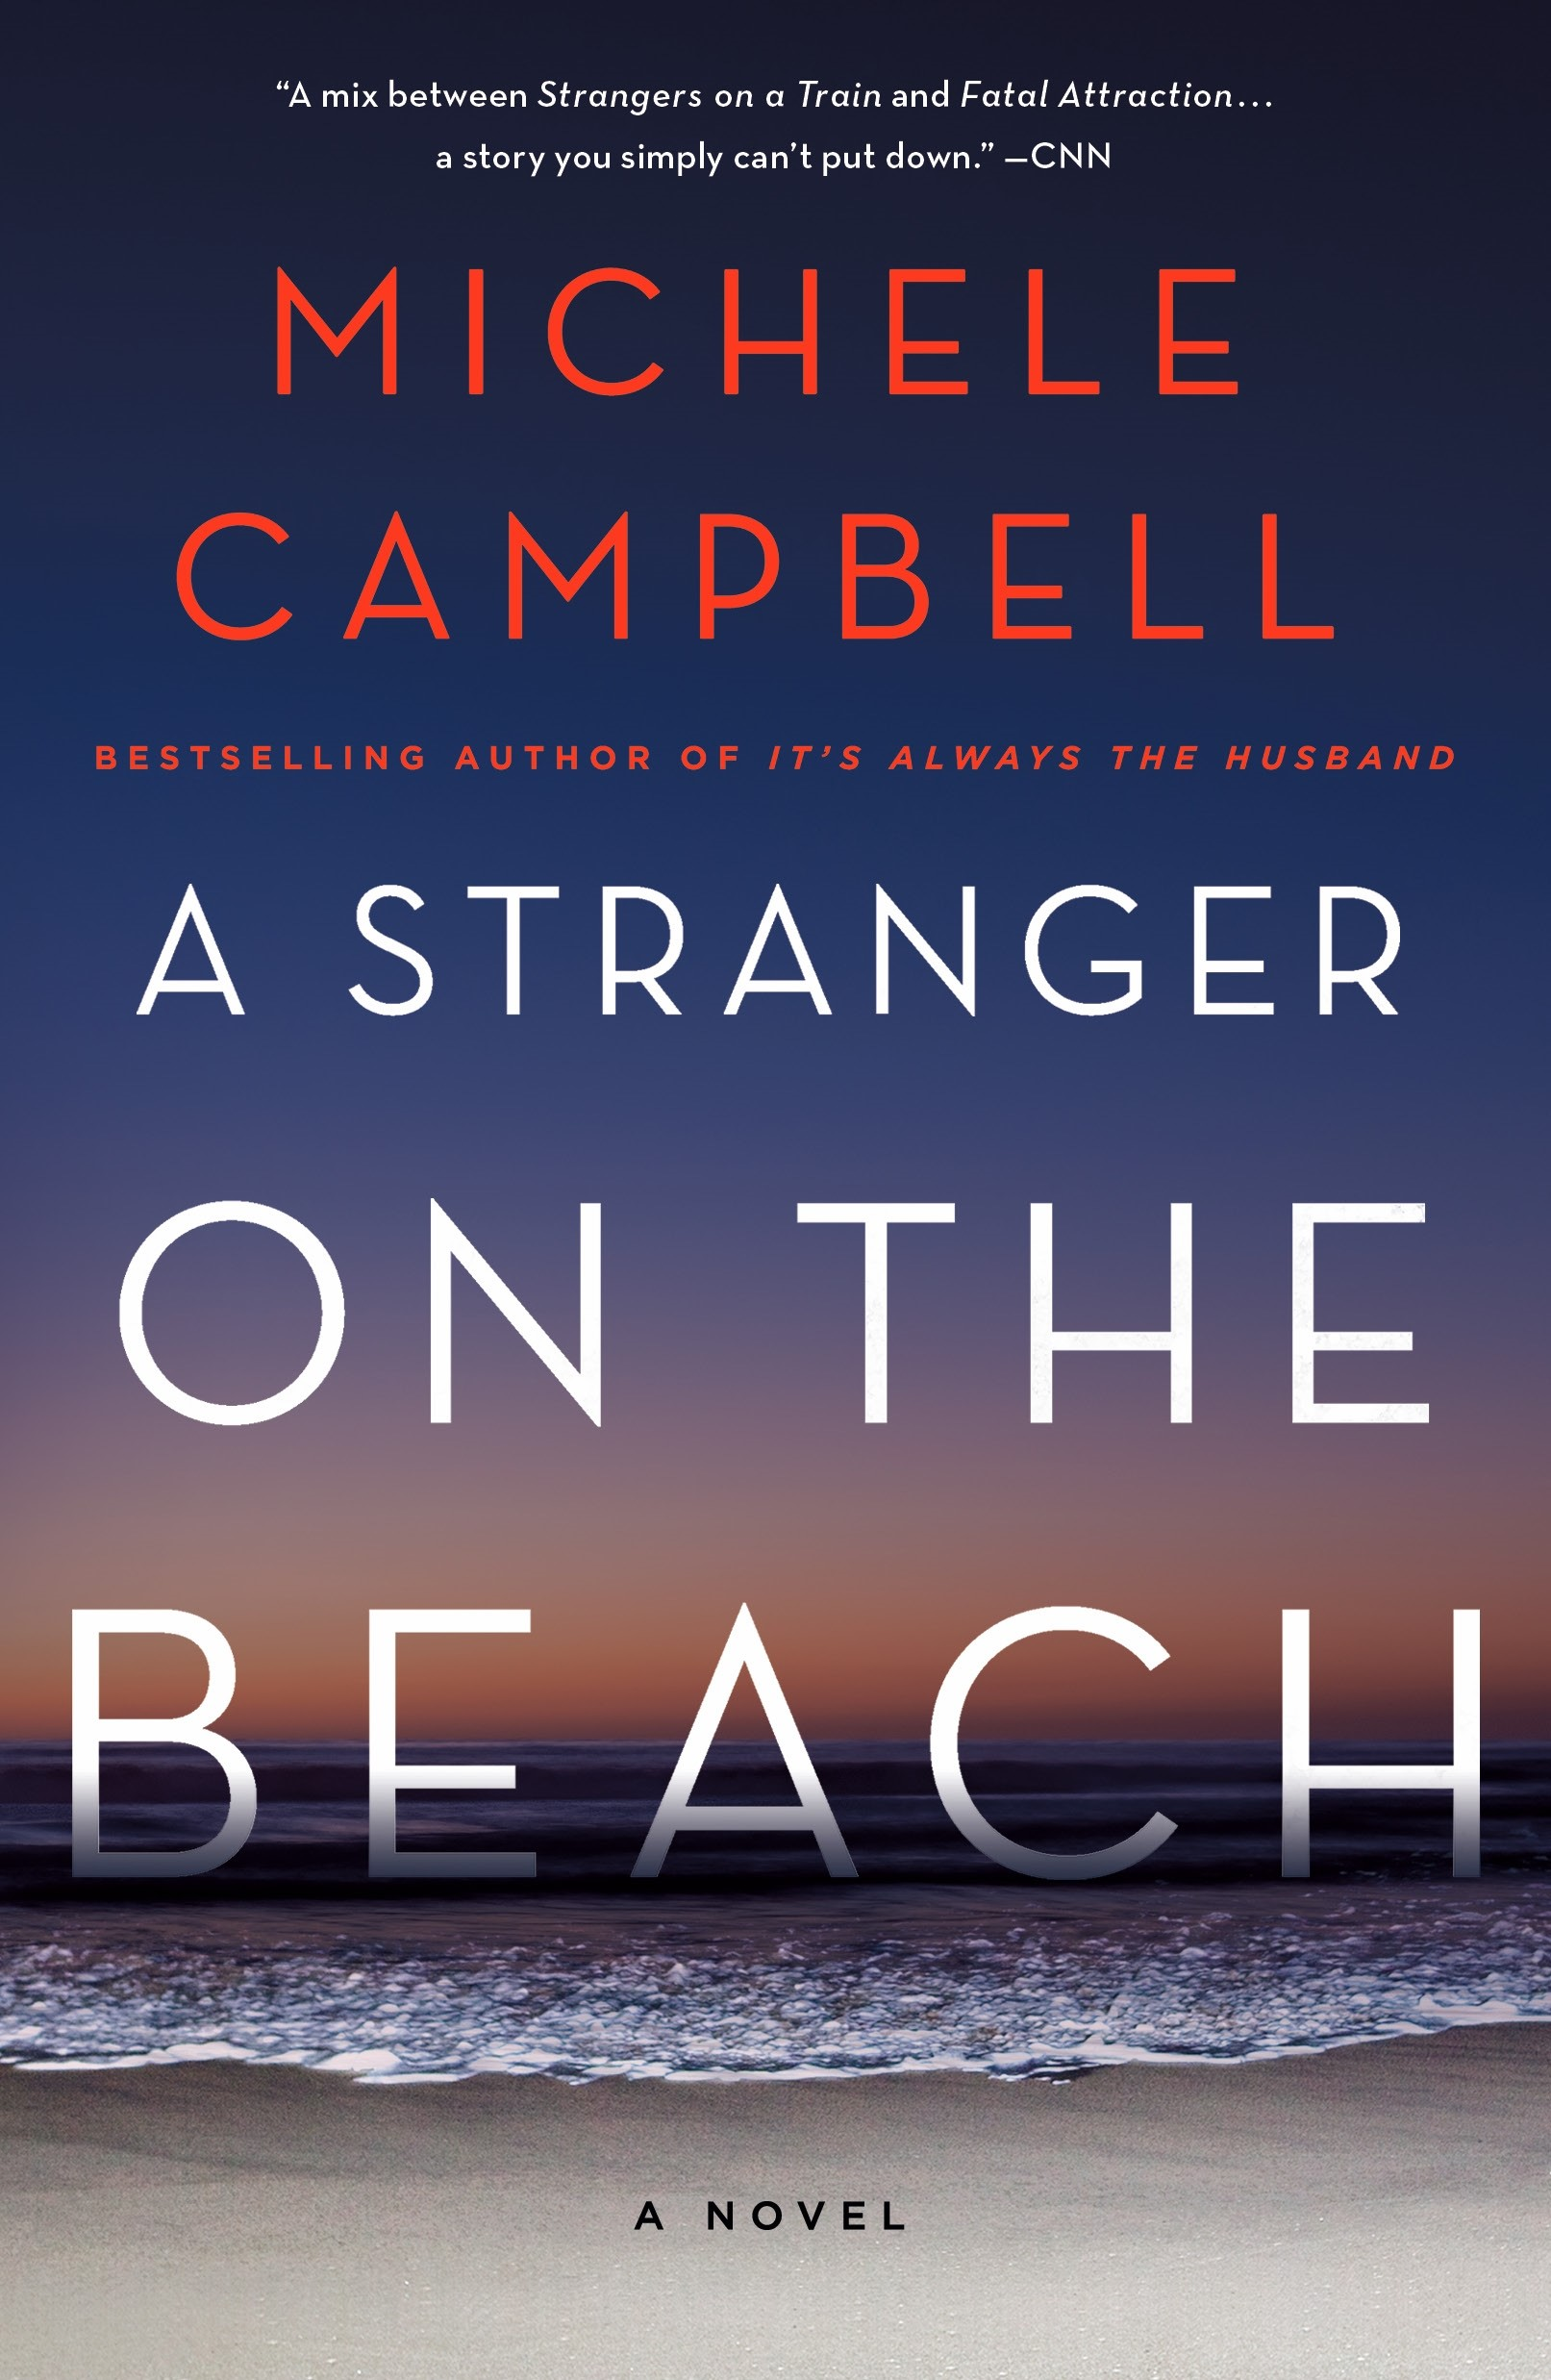 A Stranger on the Beach, by Michele Campbell, hi-res version